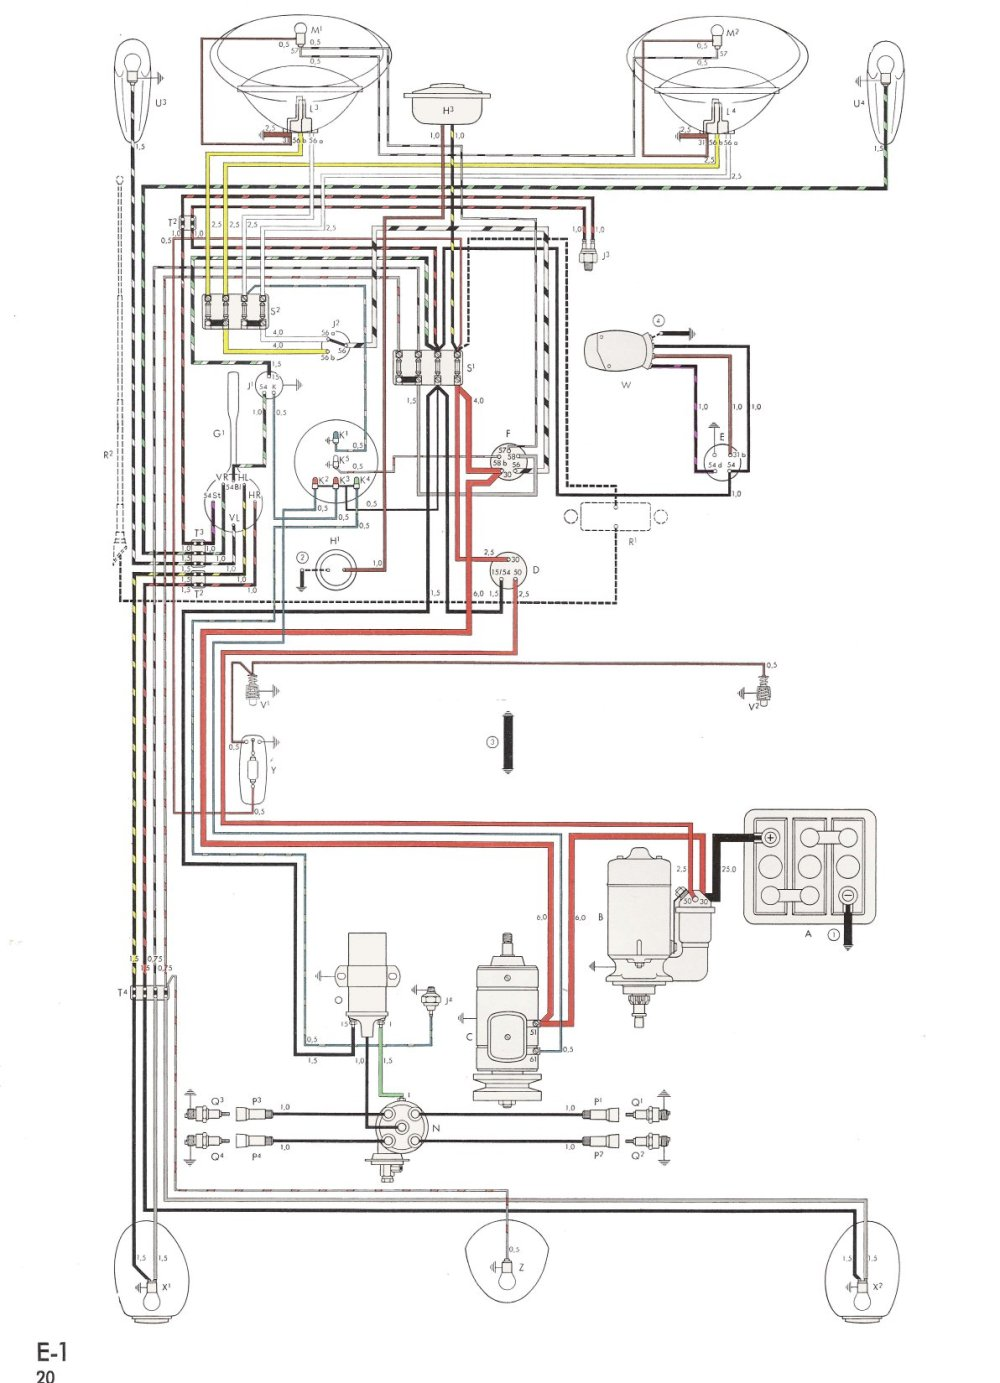 medium resolution of fuse box diagram for 1973 bug wiring diagram repair guides1973 super beetle fuse box diagram wiring